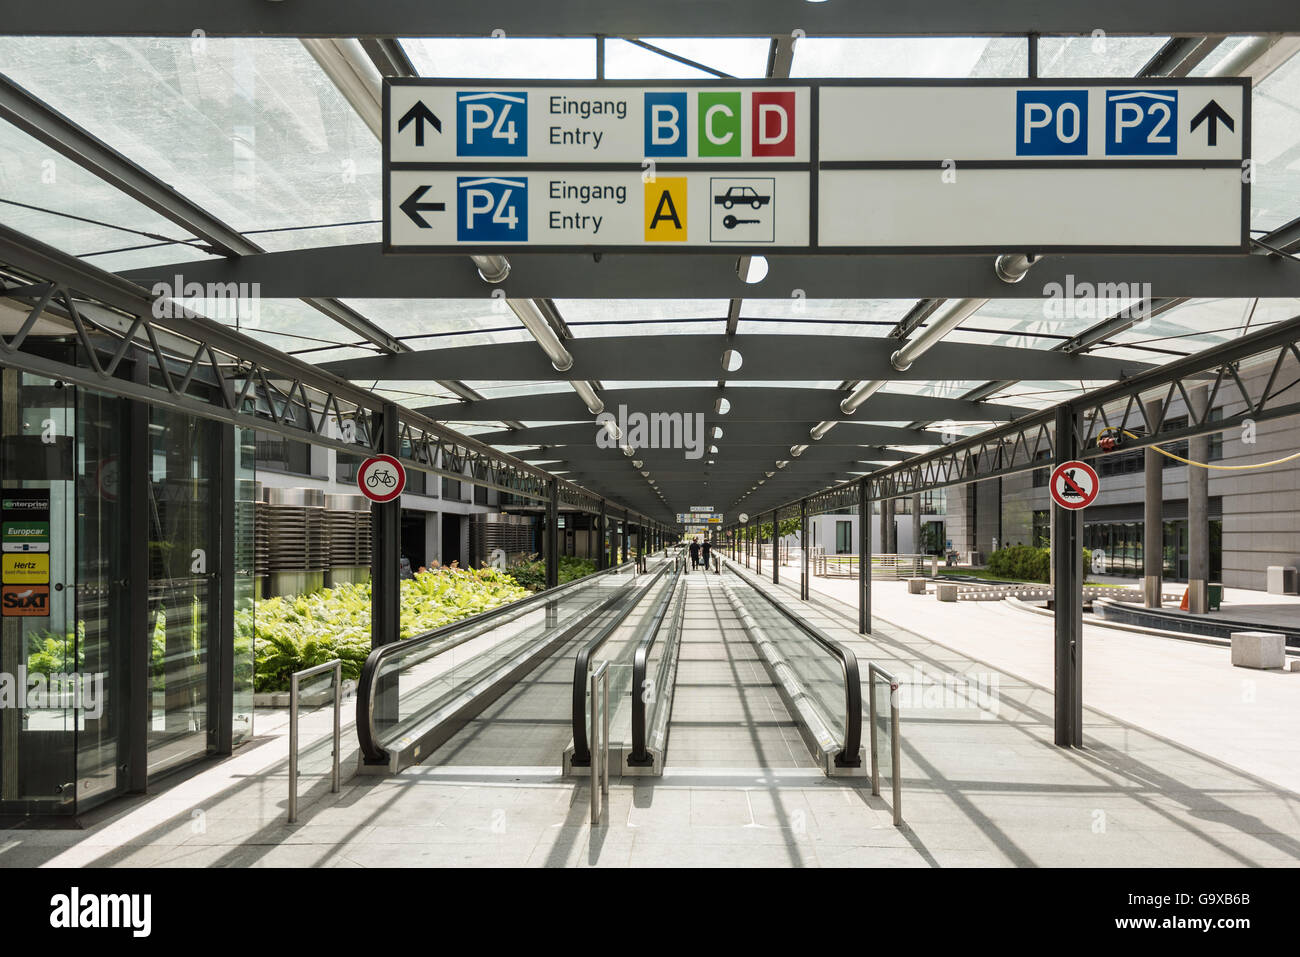 moving walkway germany stock photos moving walkway germany stock images alamy. Black Bedroom Furniture Sets. Home Design Ideas